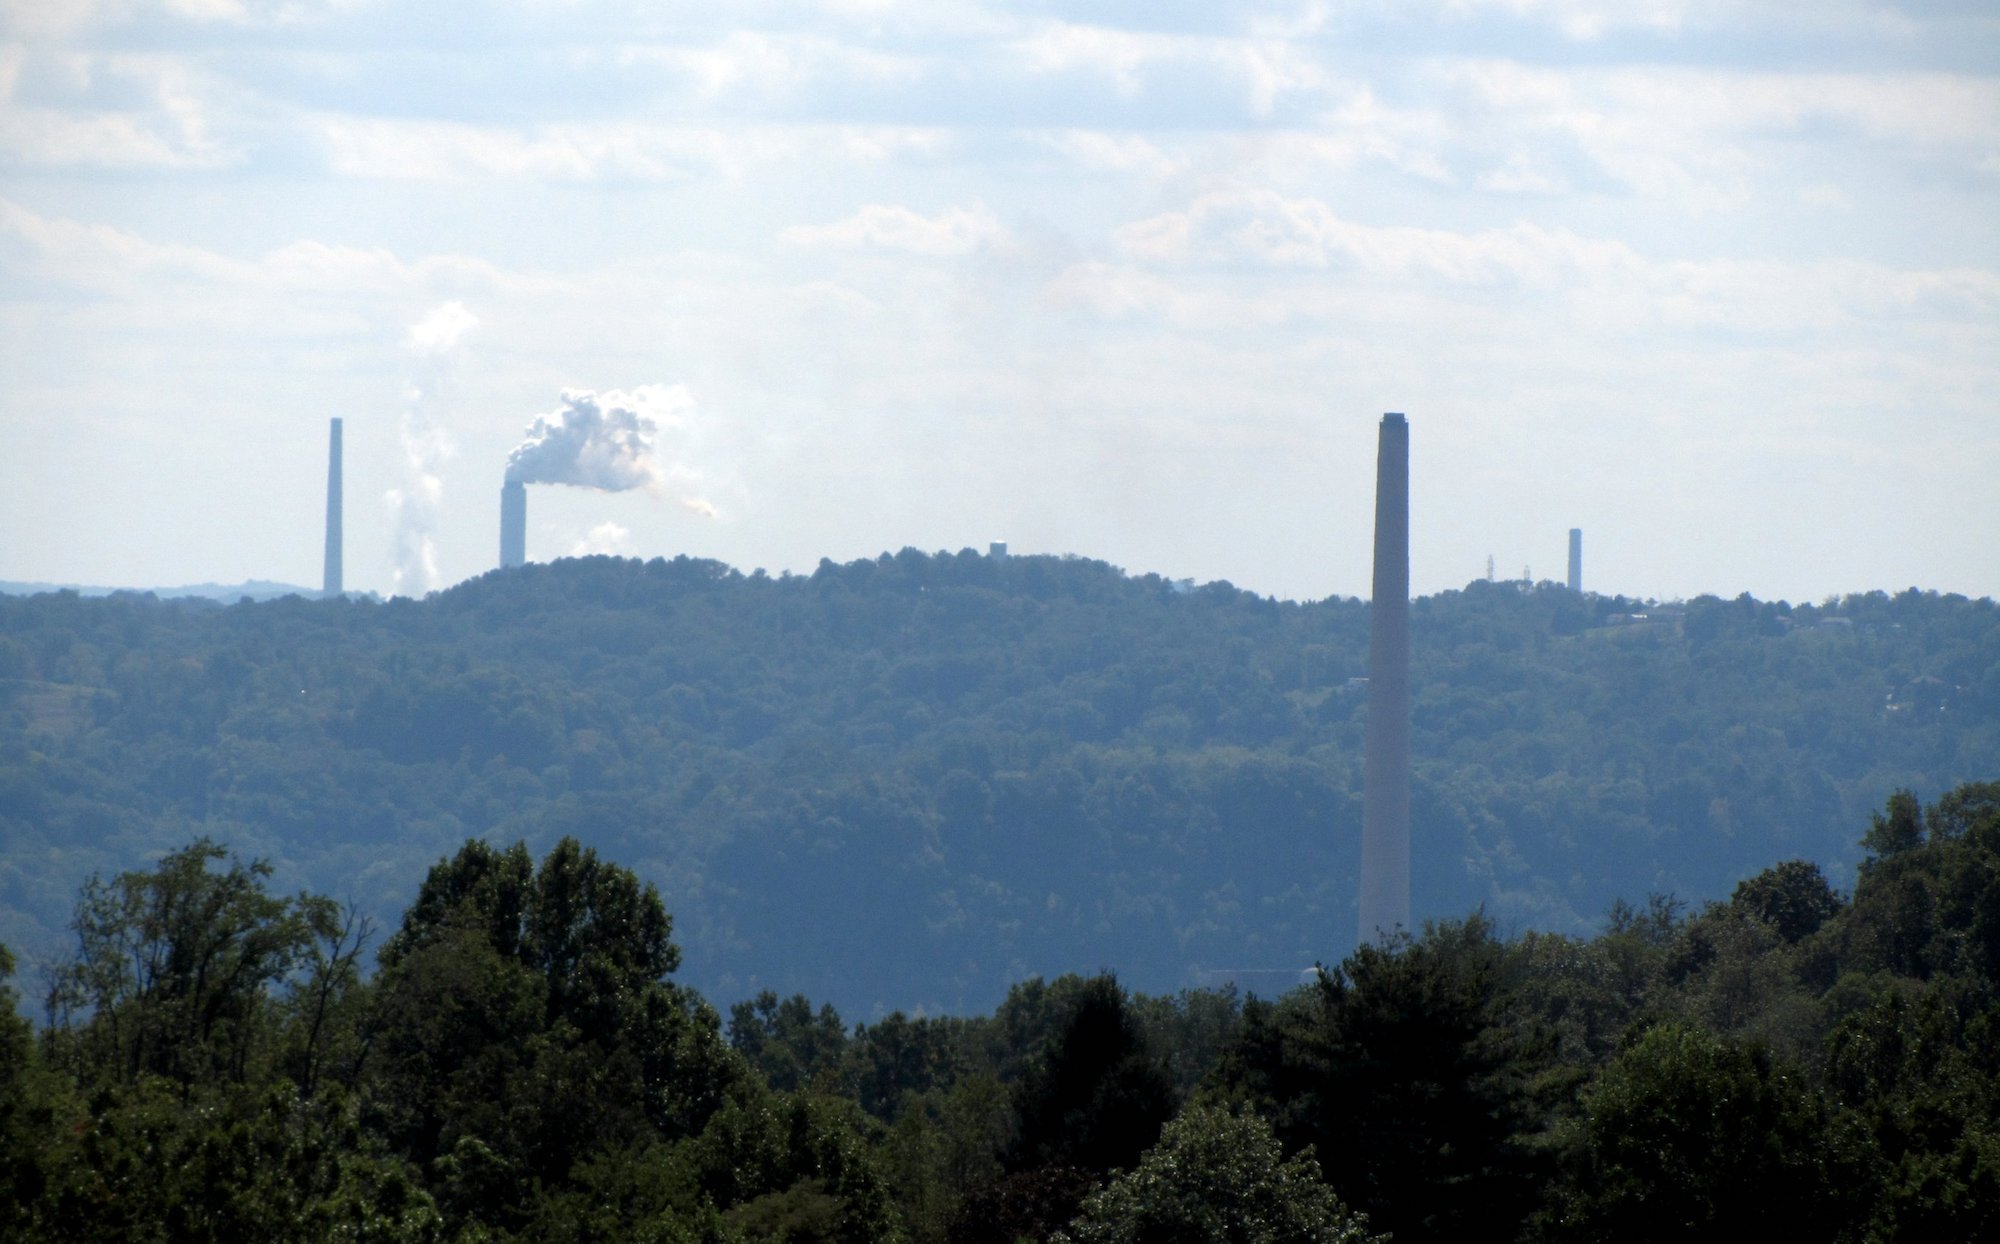 Dawson - Ohio Valley Smokestacks